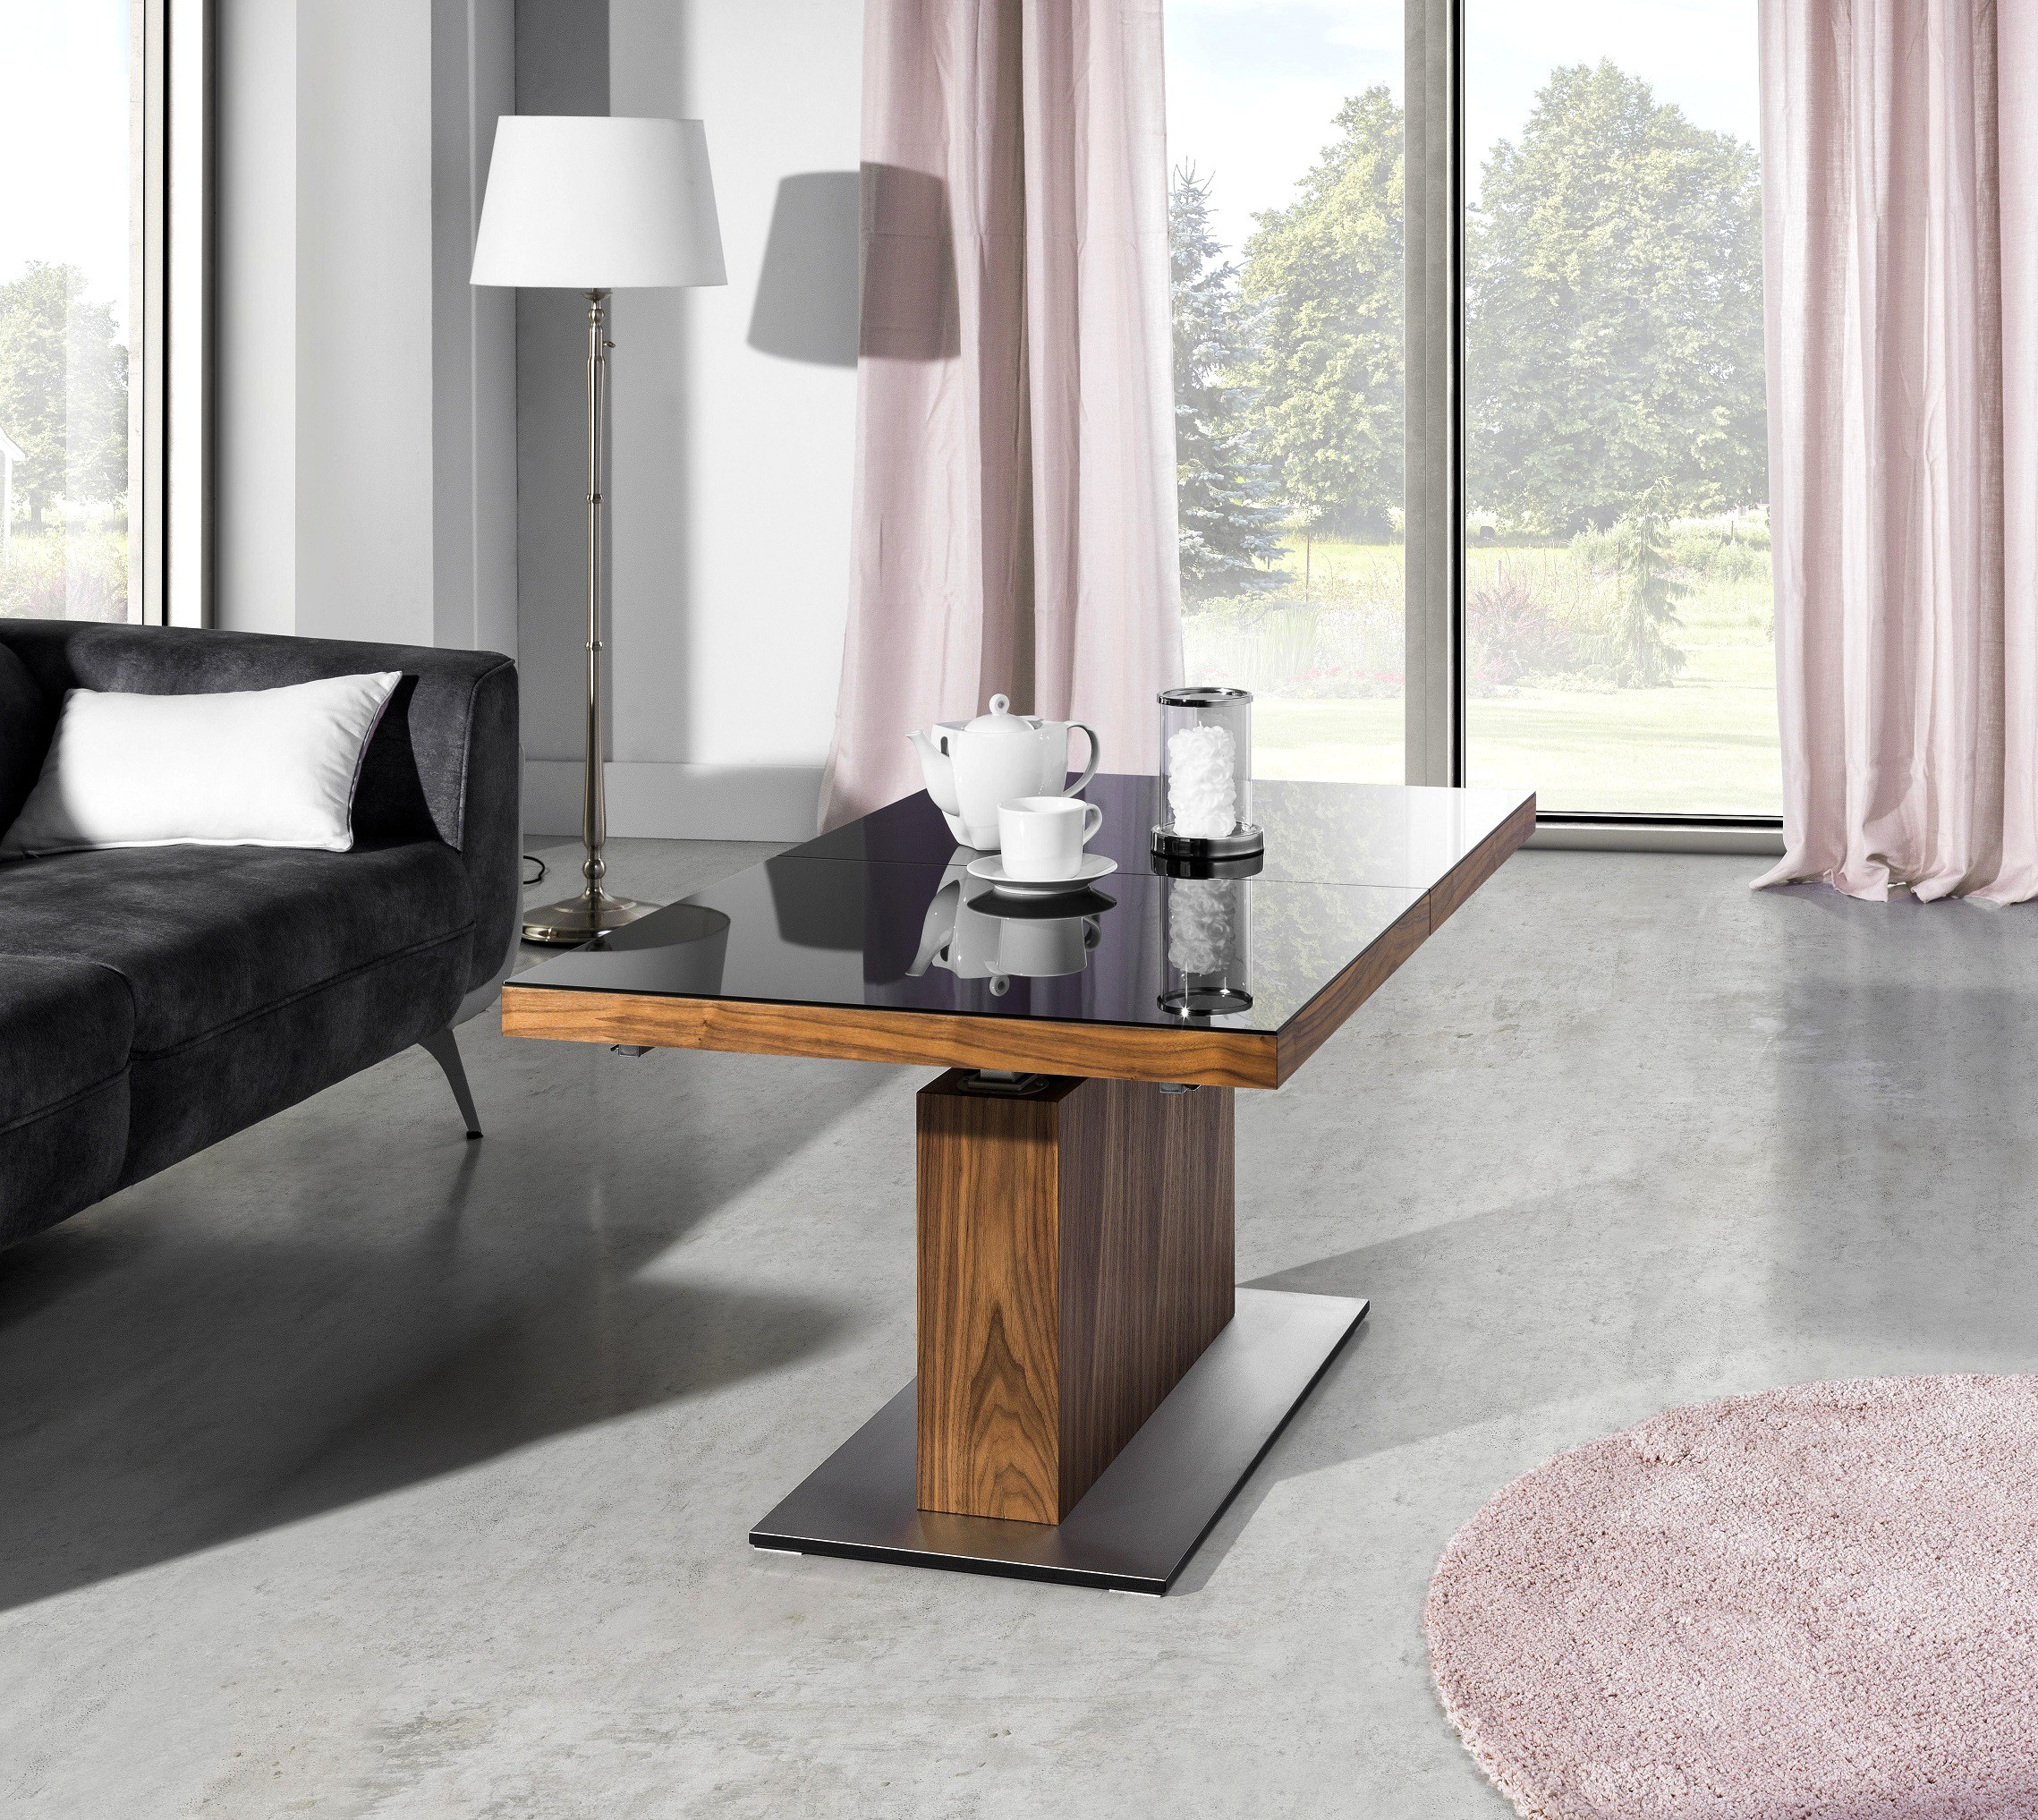 couchtisch mn 3 walnuss nussbaum schwarzglas. Black Bedroom Furniture Sets. Home Design Ideas